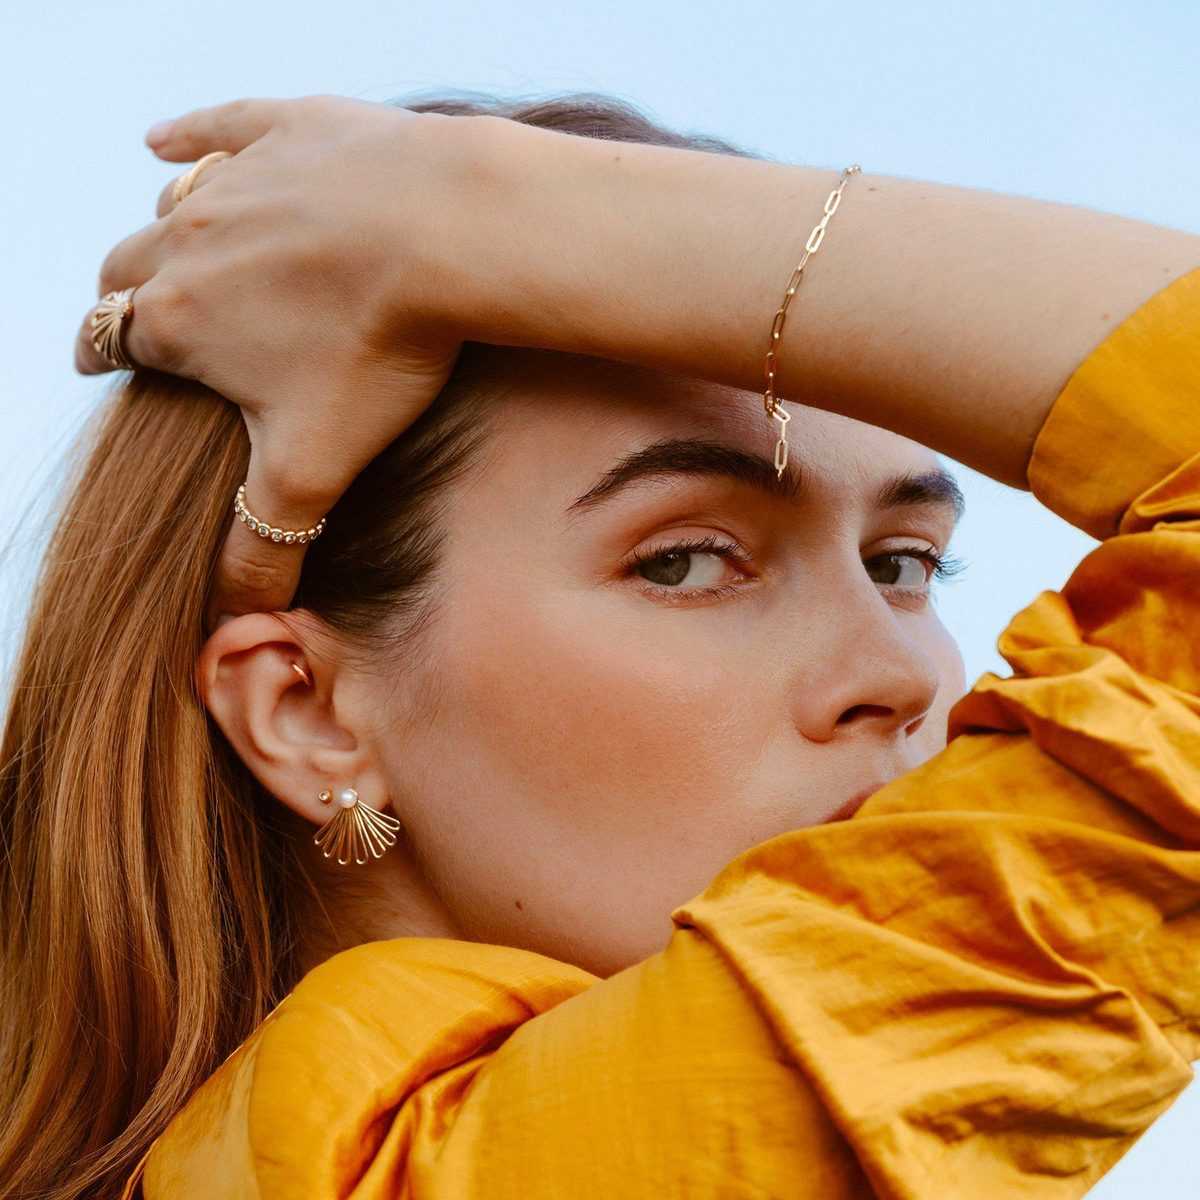 Model showing off jewelry from ethical fashion brand, Au-Rate.